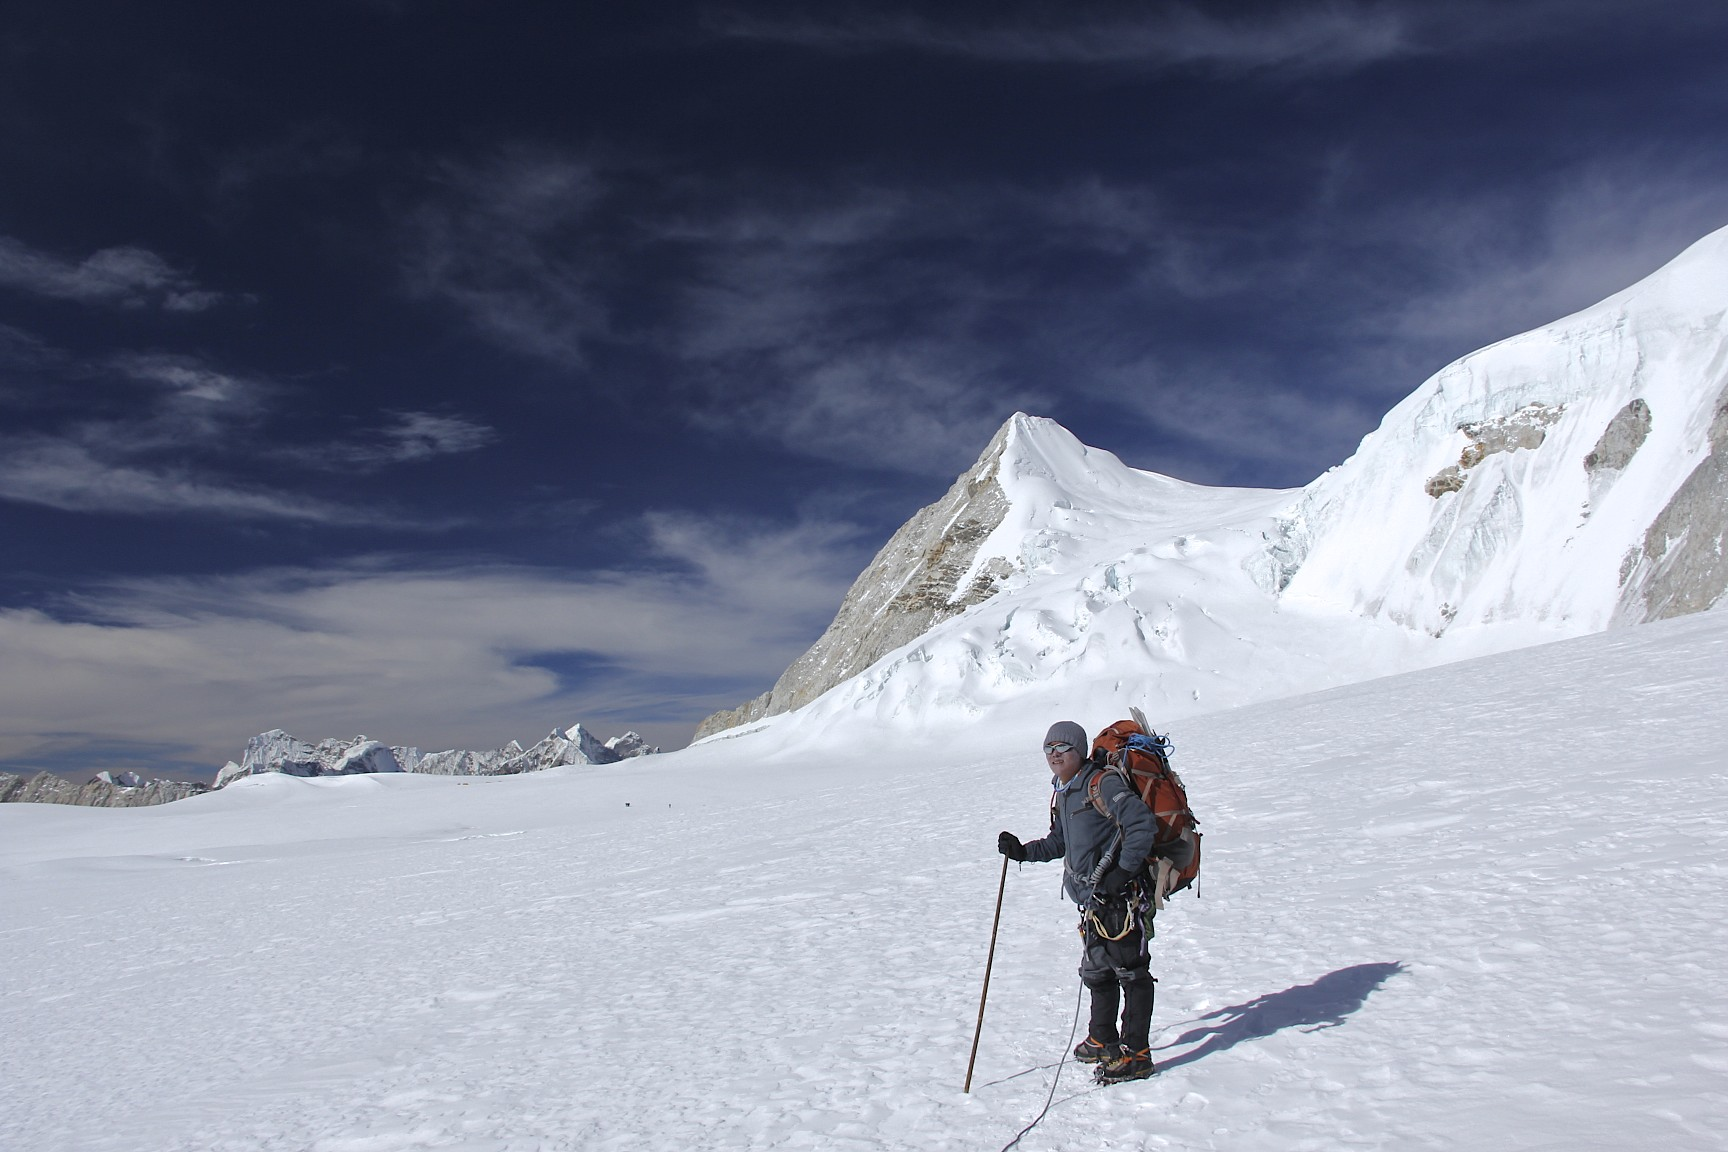 On the ice plateau between Sherpani Col and West Col